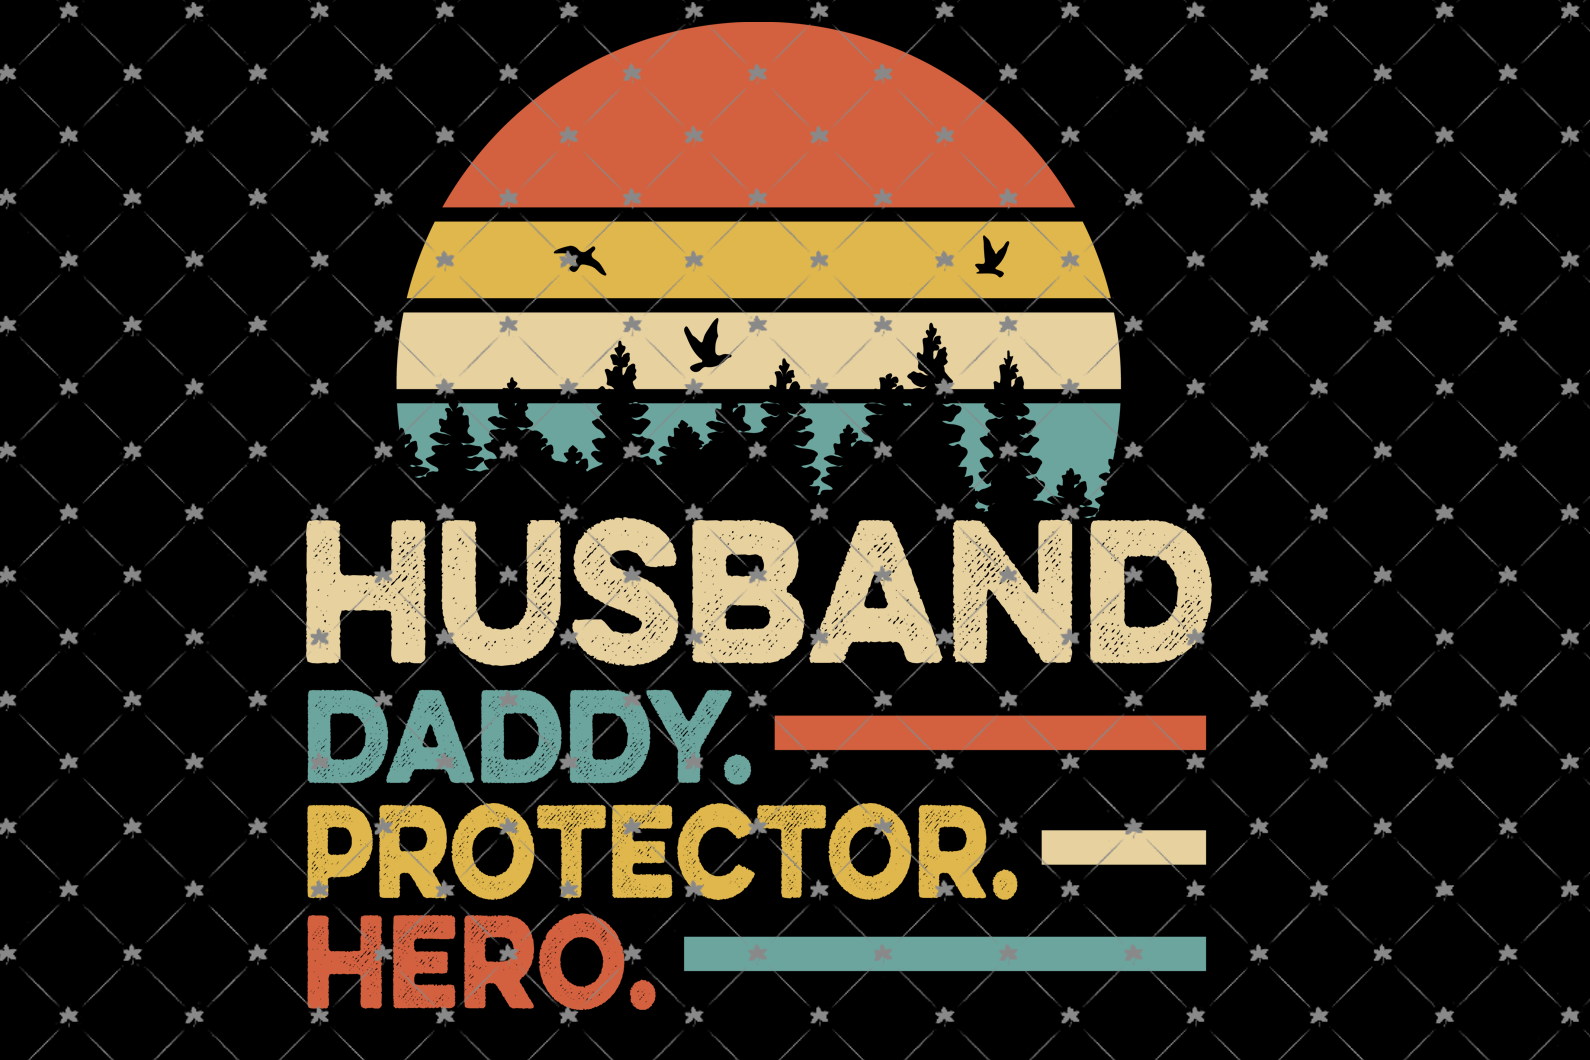 Husband daddy protector hero SVG, papa svg, baba svg,father's day svg, father svg, dad svg, daddy svg, poppop svg Files For Silhouette, Files For Cricut, SVG, DXF, EPS, PNG, Instant Download